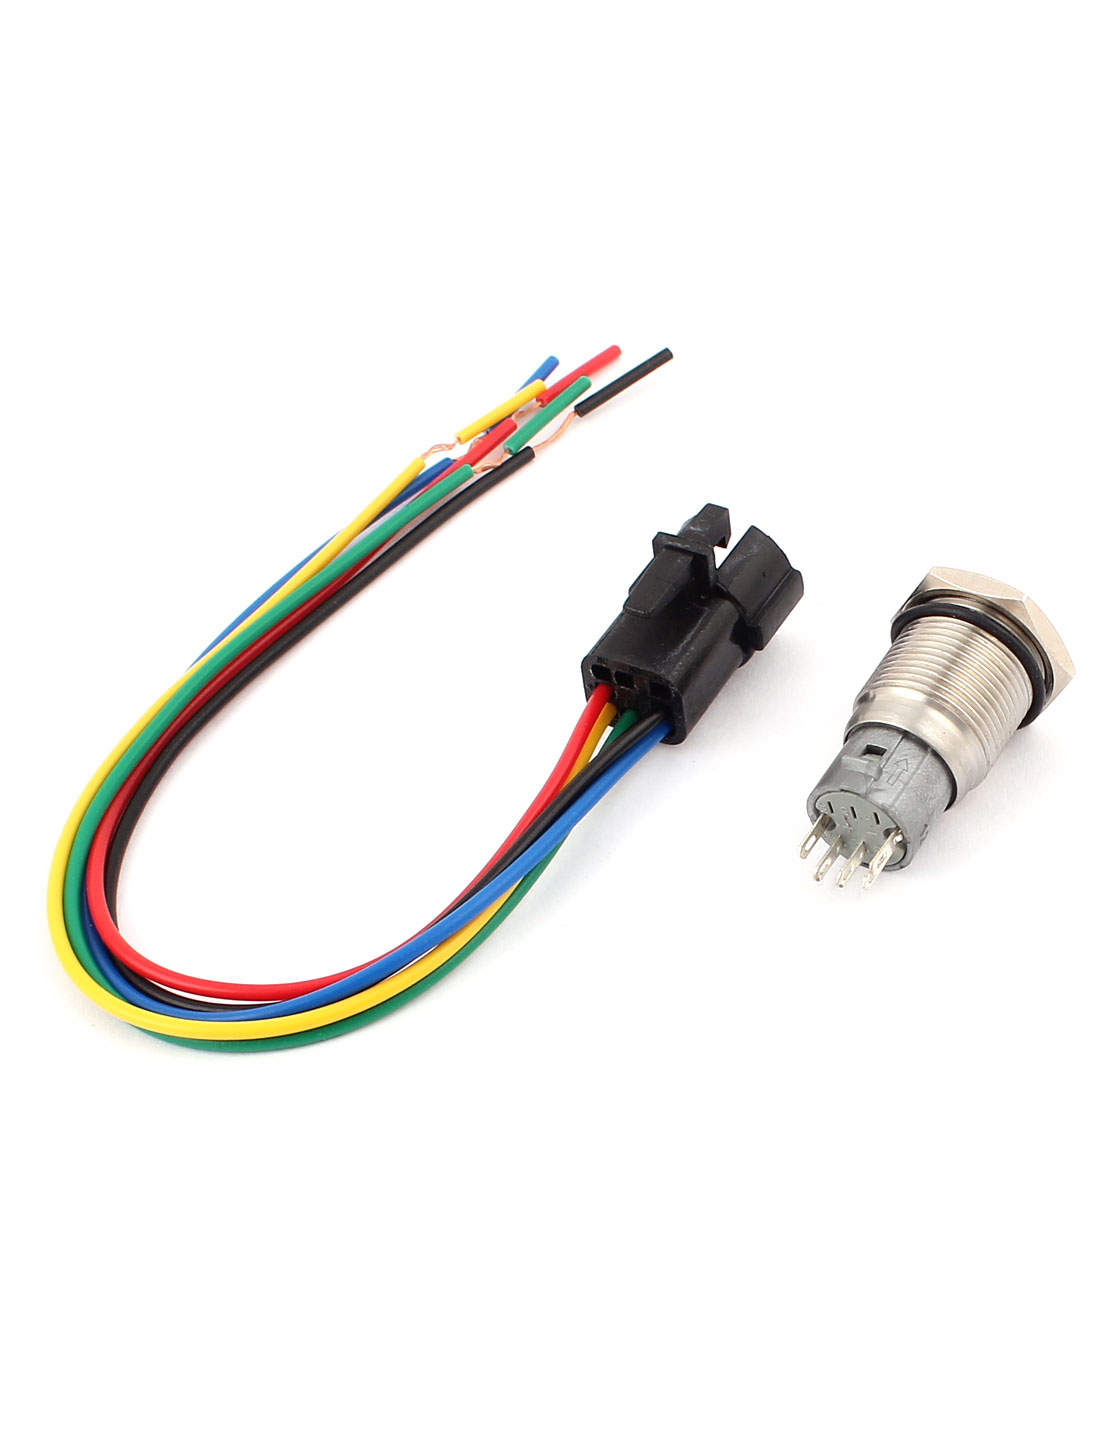 dc 12v green angle eye spdt latching car push button switch 16mm w wire walmart canada [ 2000 x 2000 Pixel ]